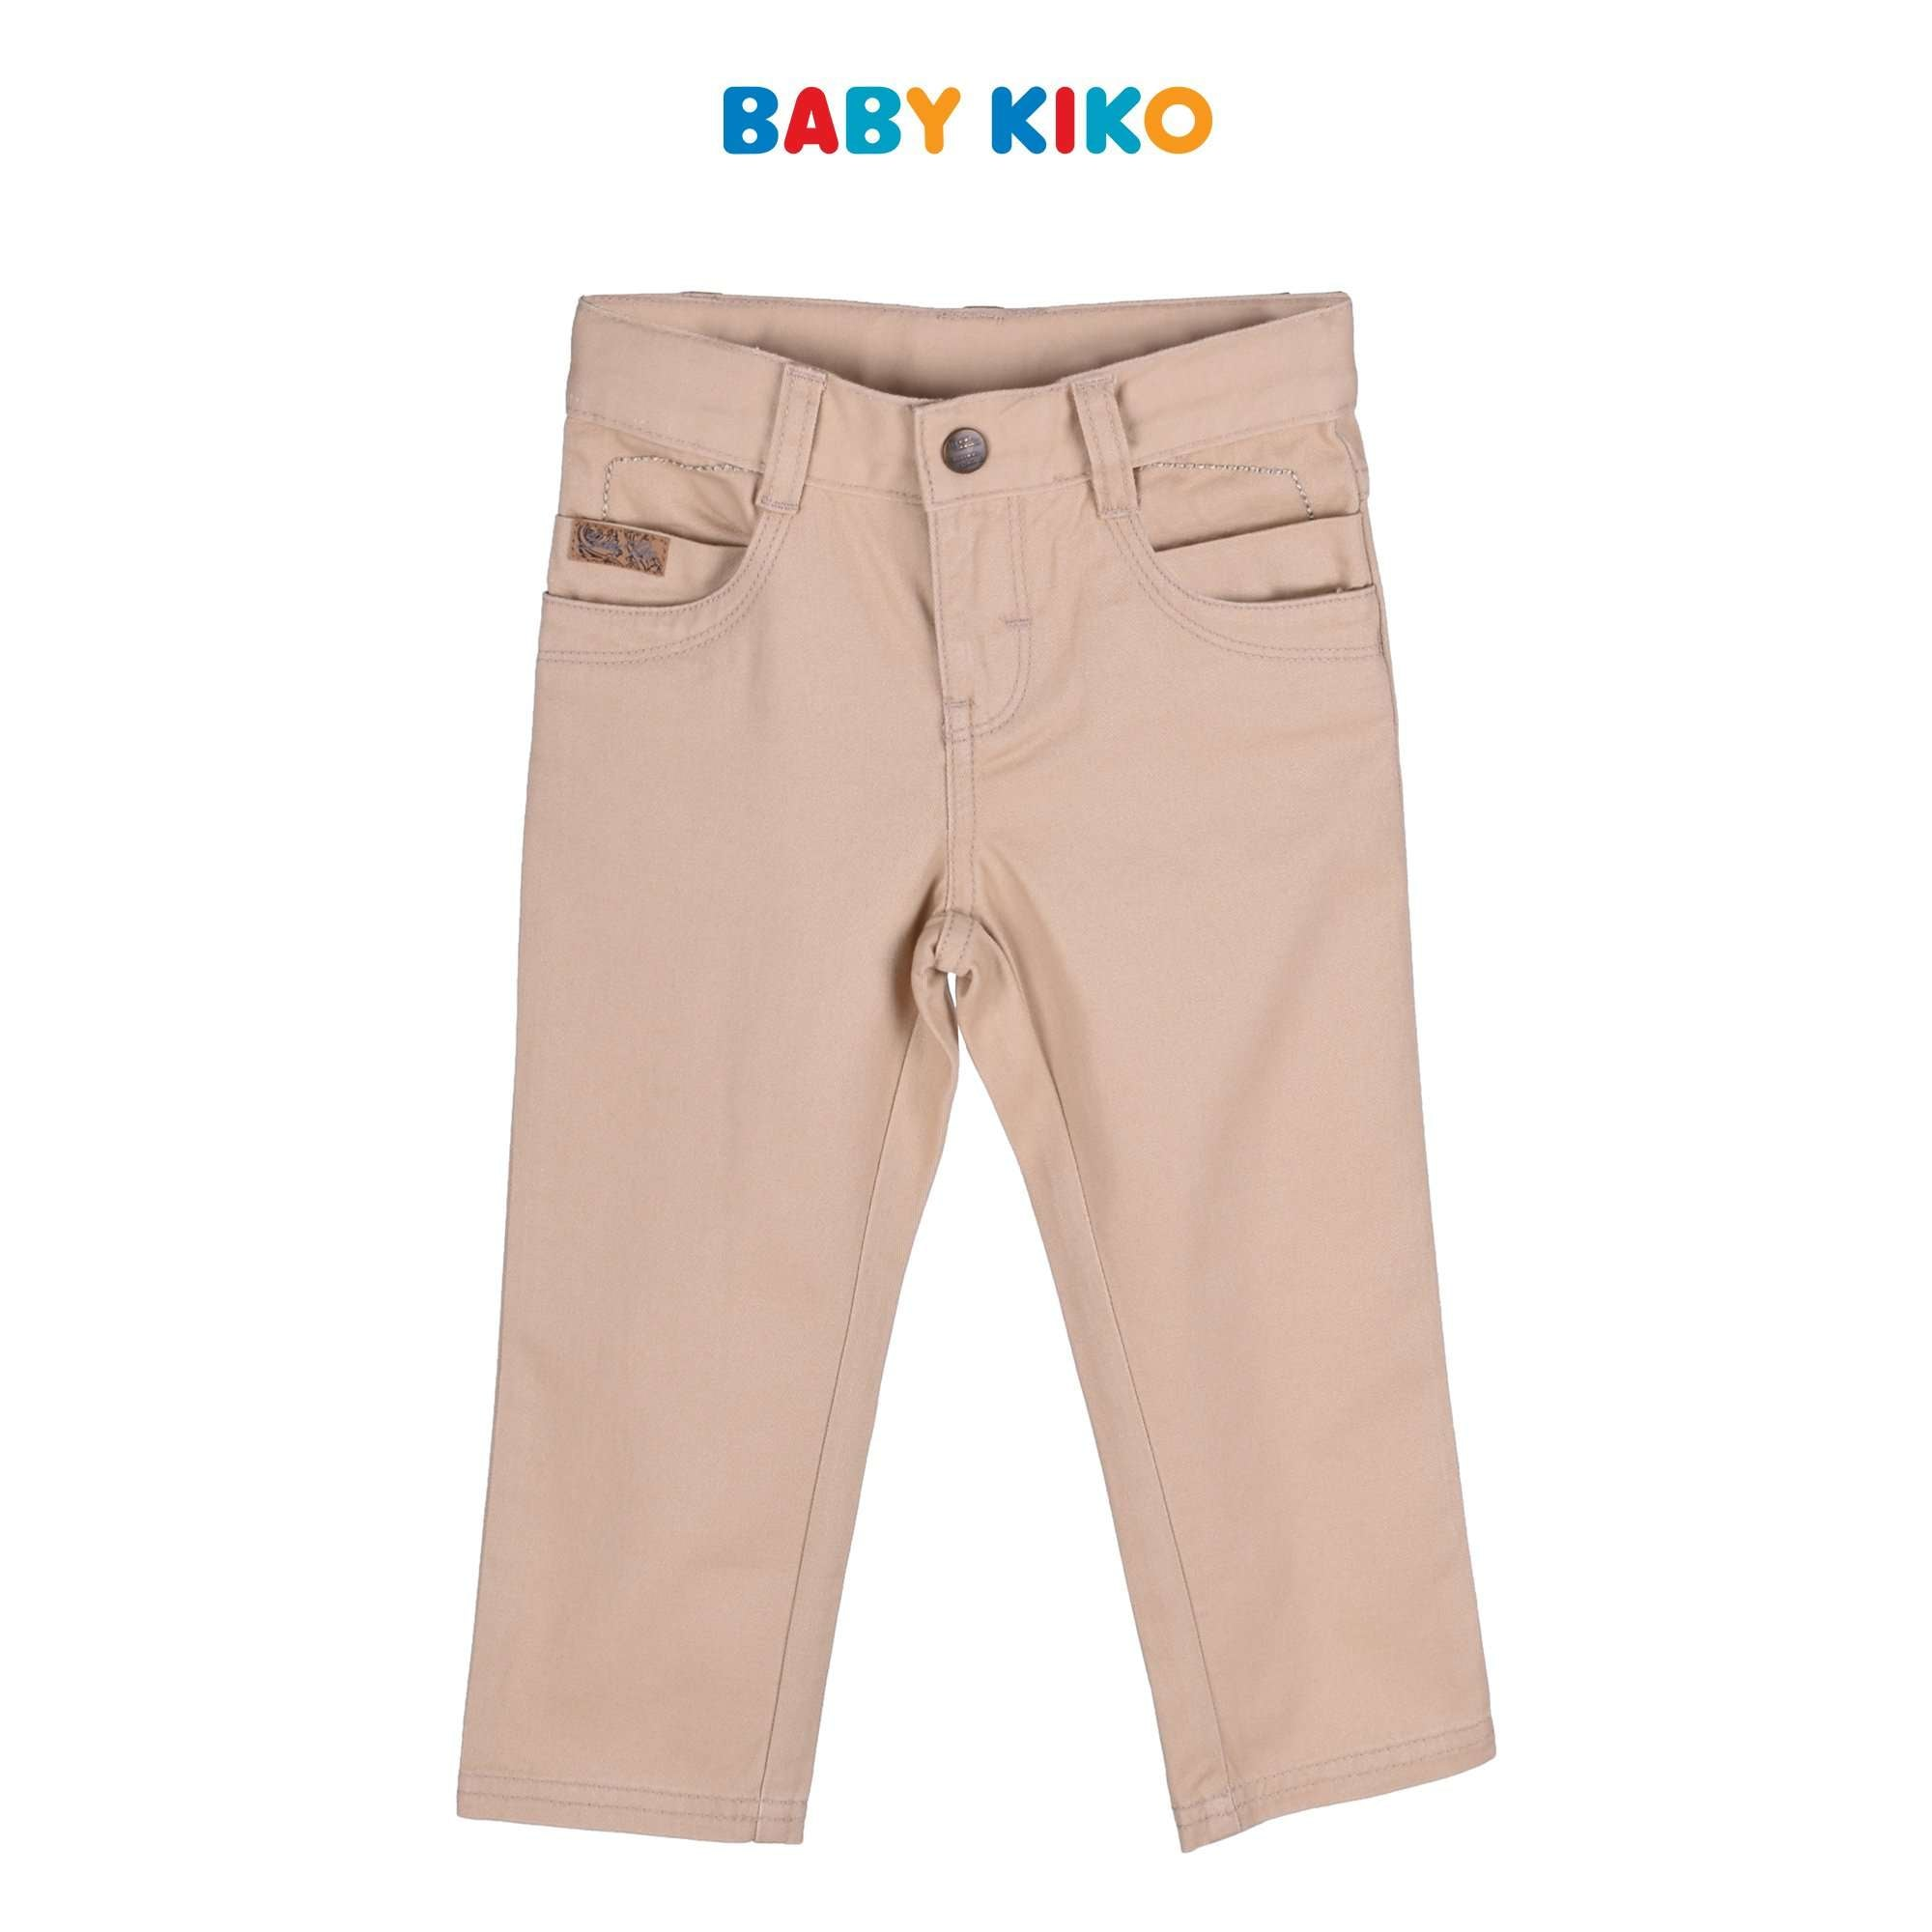 Baby KIKO Toddler Boy Long Pants 335115-252 : Buy Baby KIKO online at CMG.MY